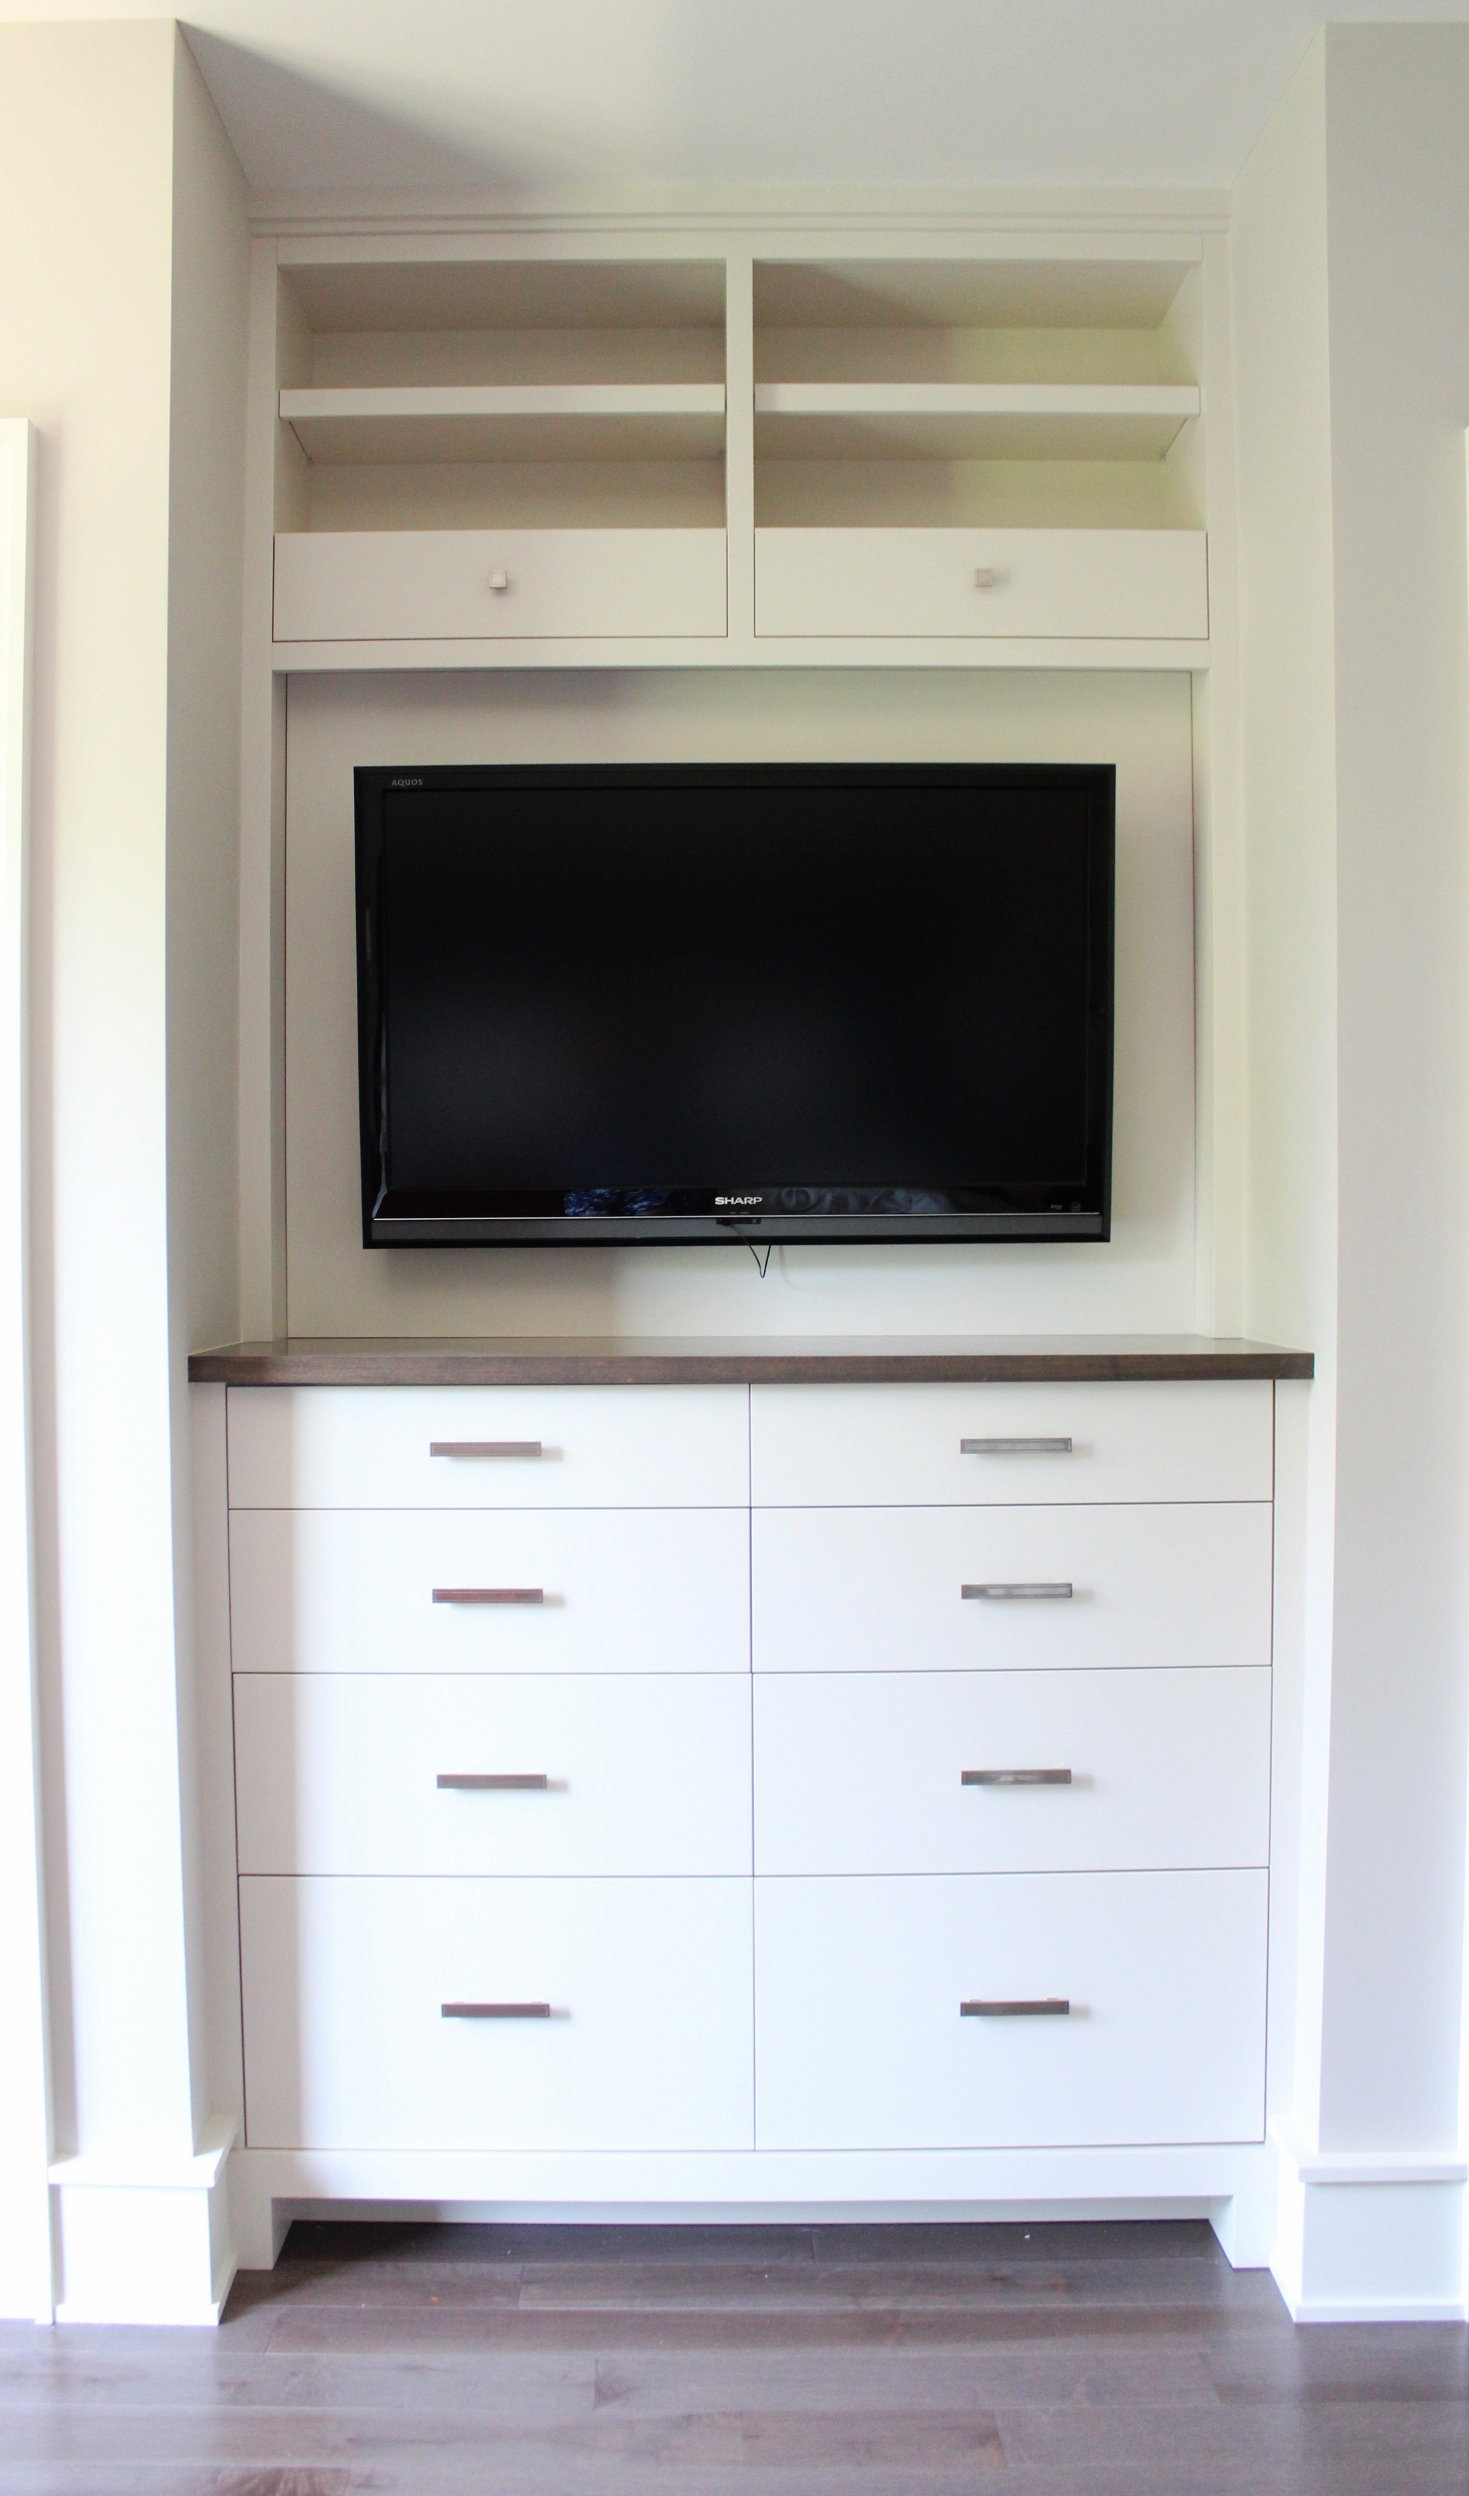 Master Bedroom built in dresser with TV above and electronics storage.